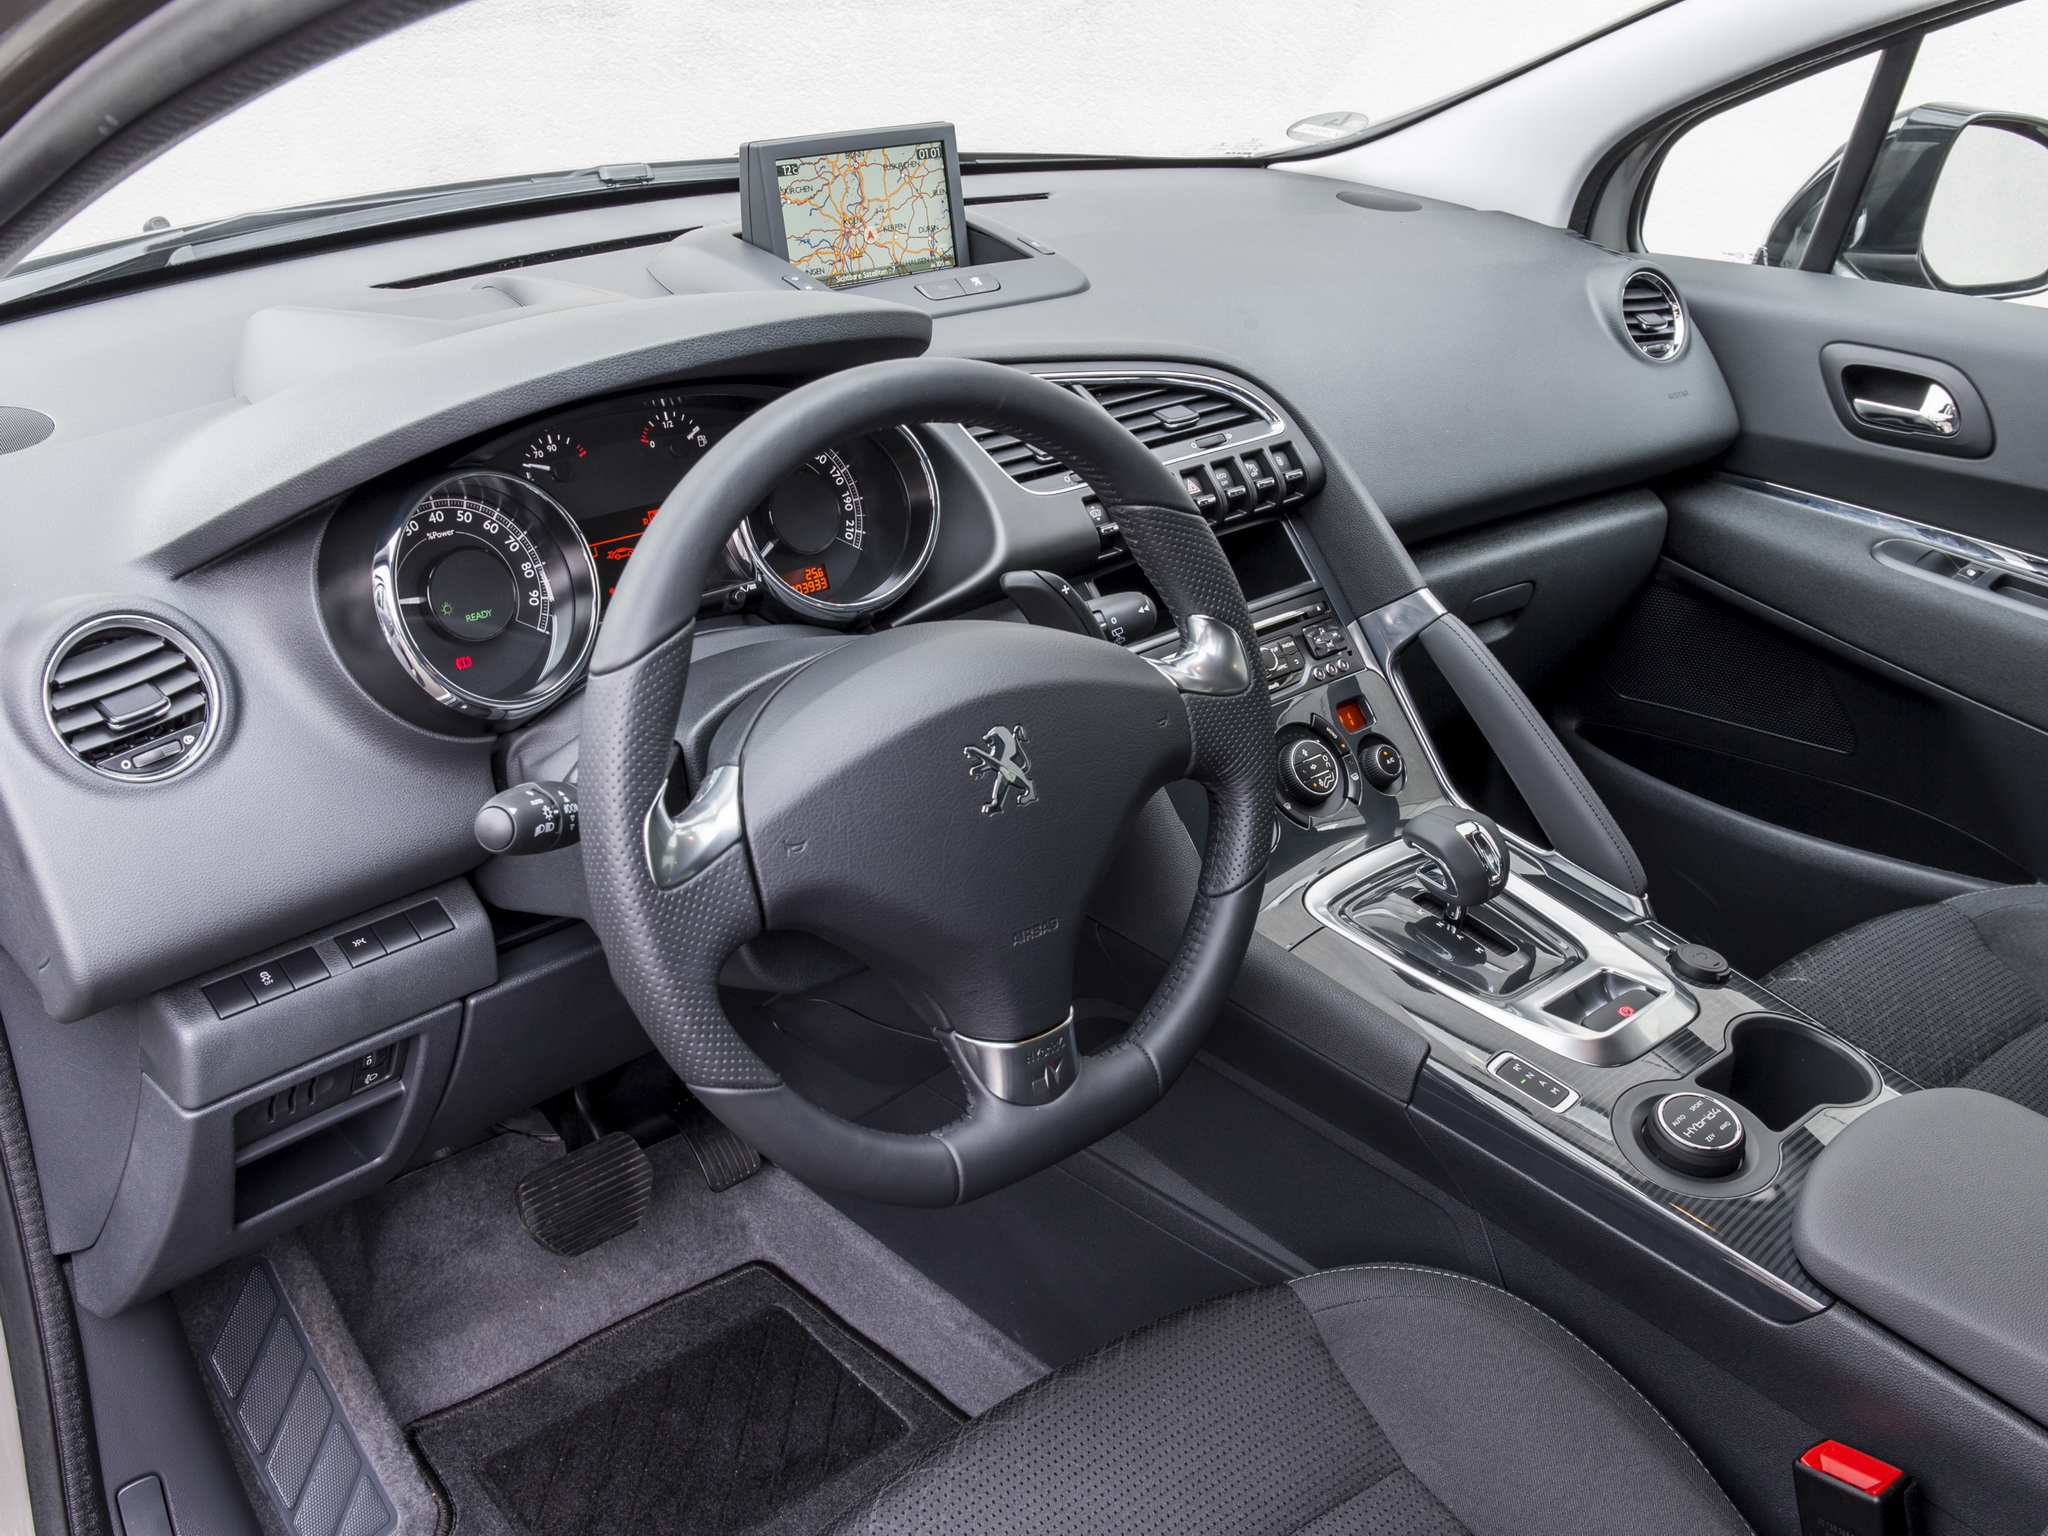 The old 2014 Peugeot 3008 cabin impresses the user with a luxurious feel